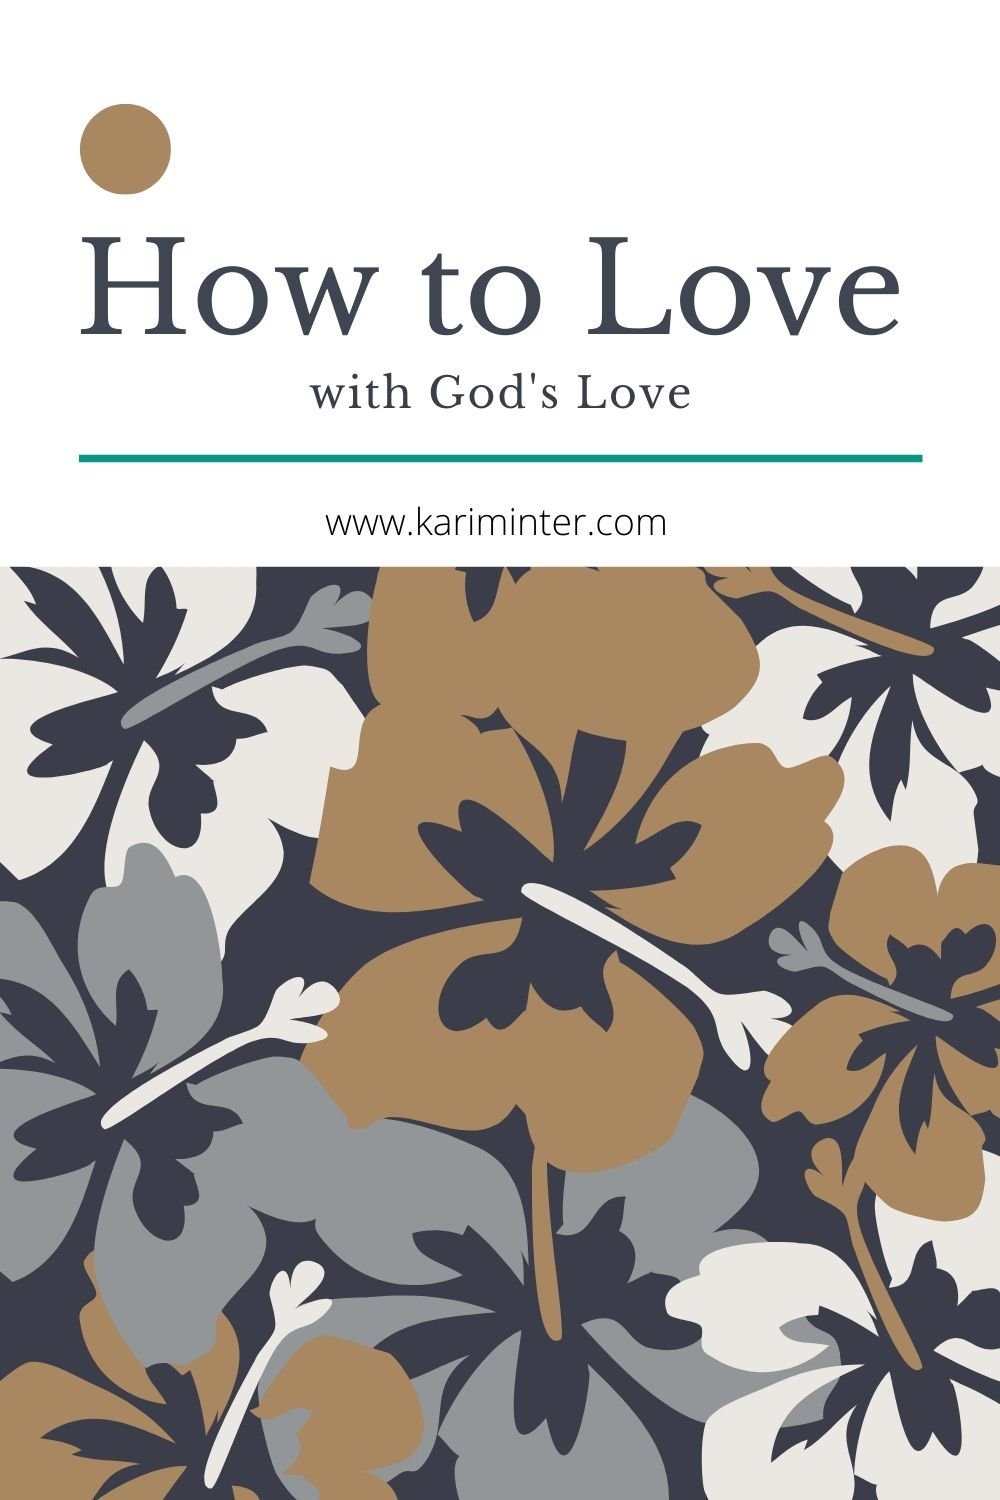 How-to-love-with-gods-love